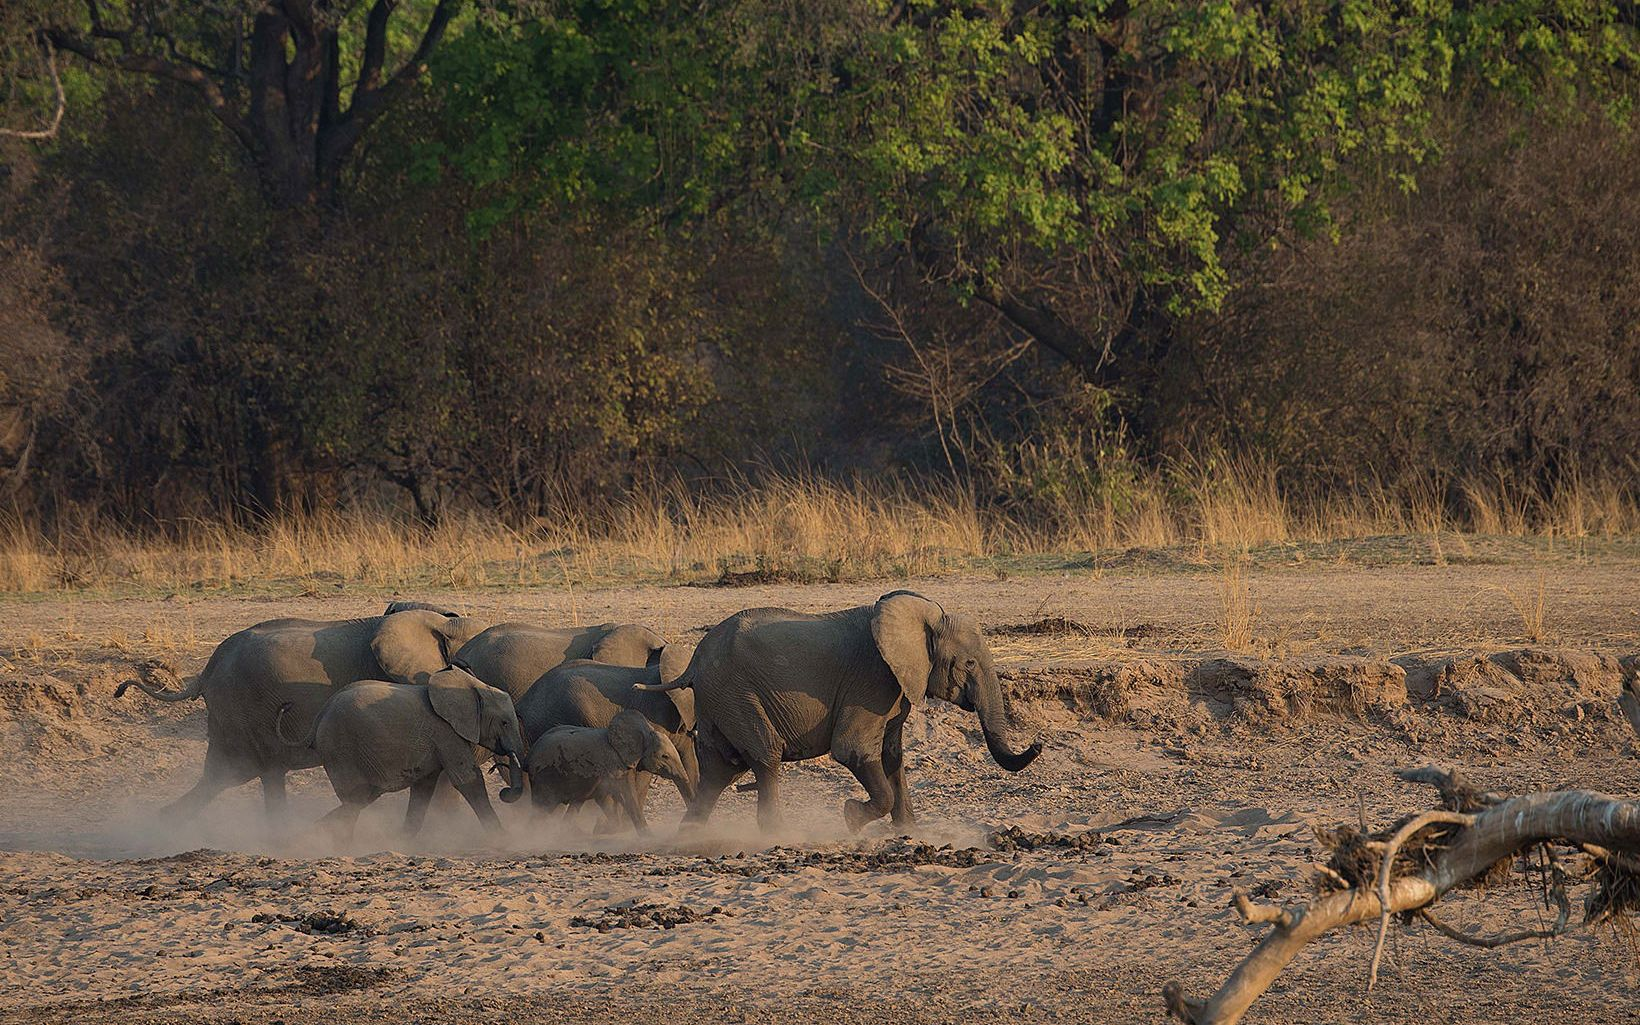 Elephants in Luangwa, Zambia.